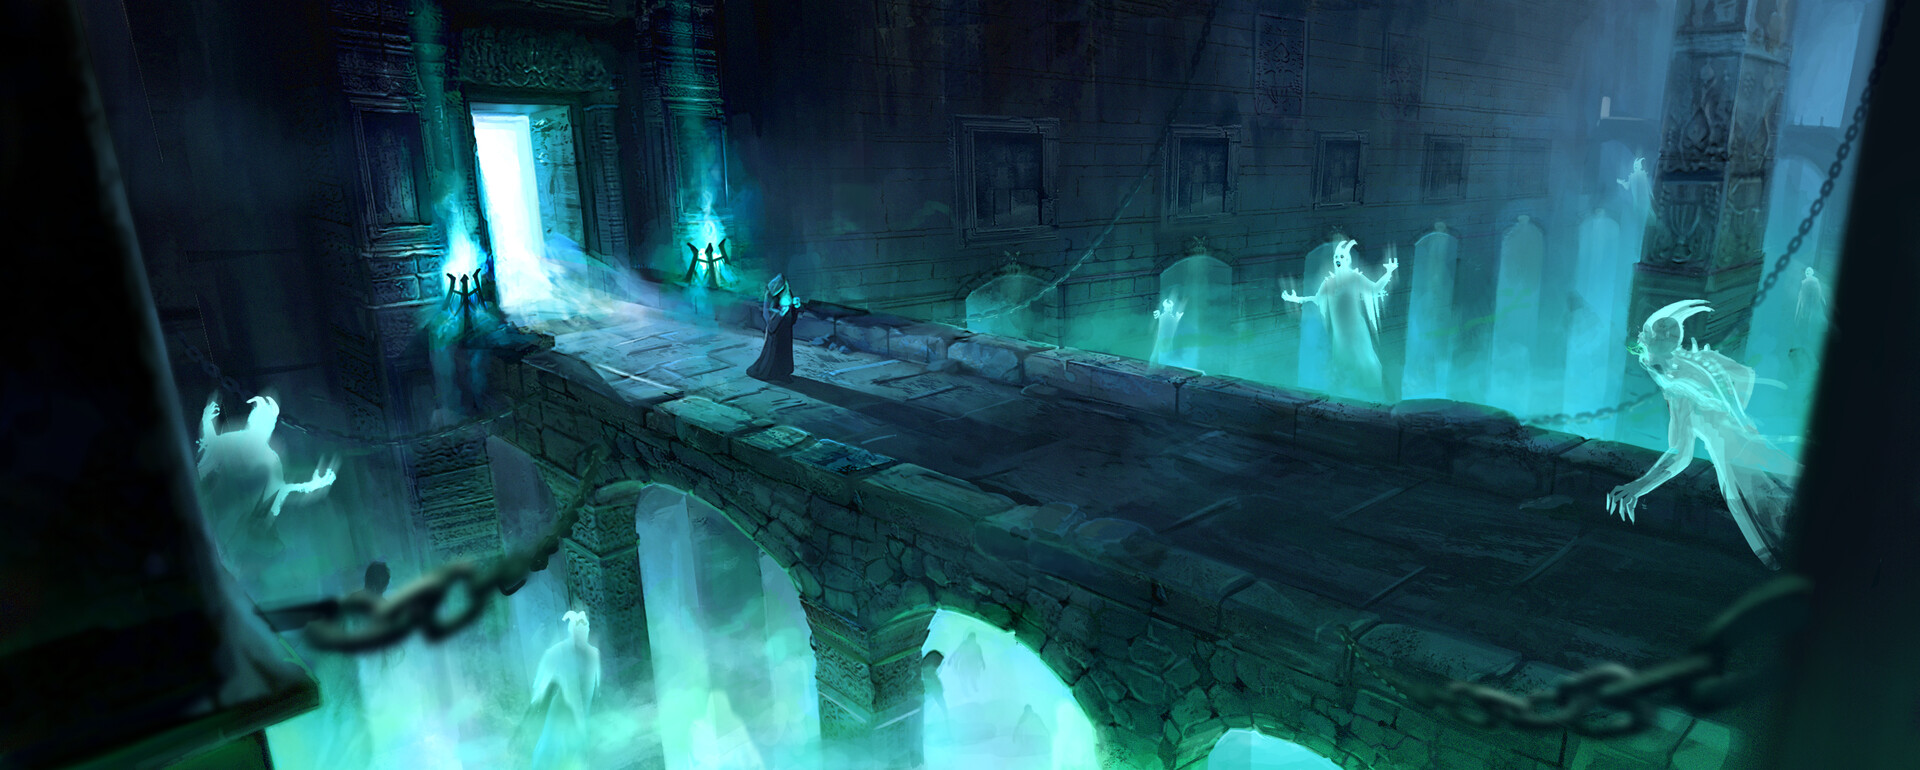 Ghost Dungeon Environment Practice